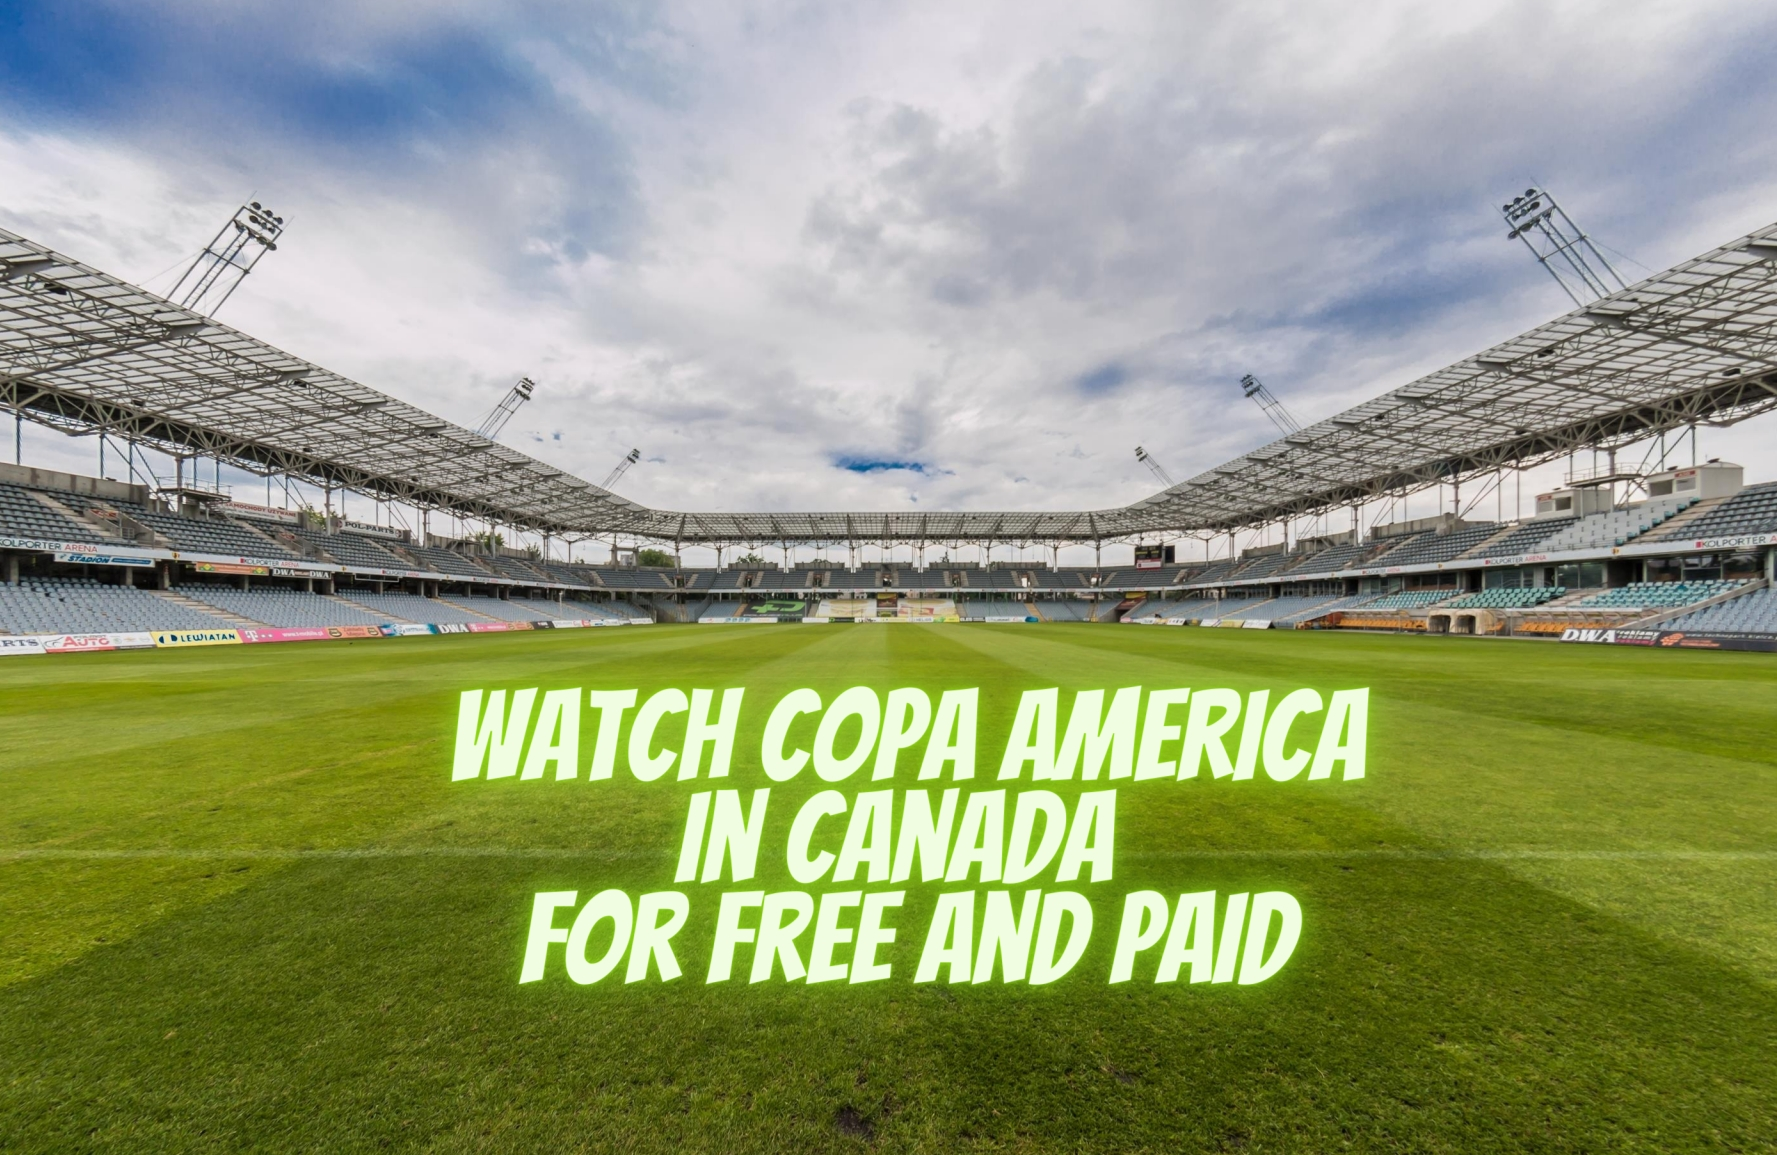 Watch Copa America in Canada for Free and Paid